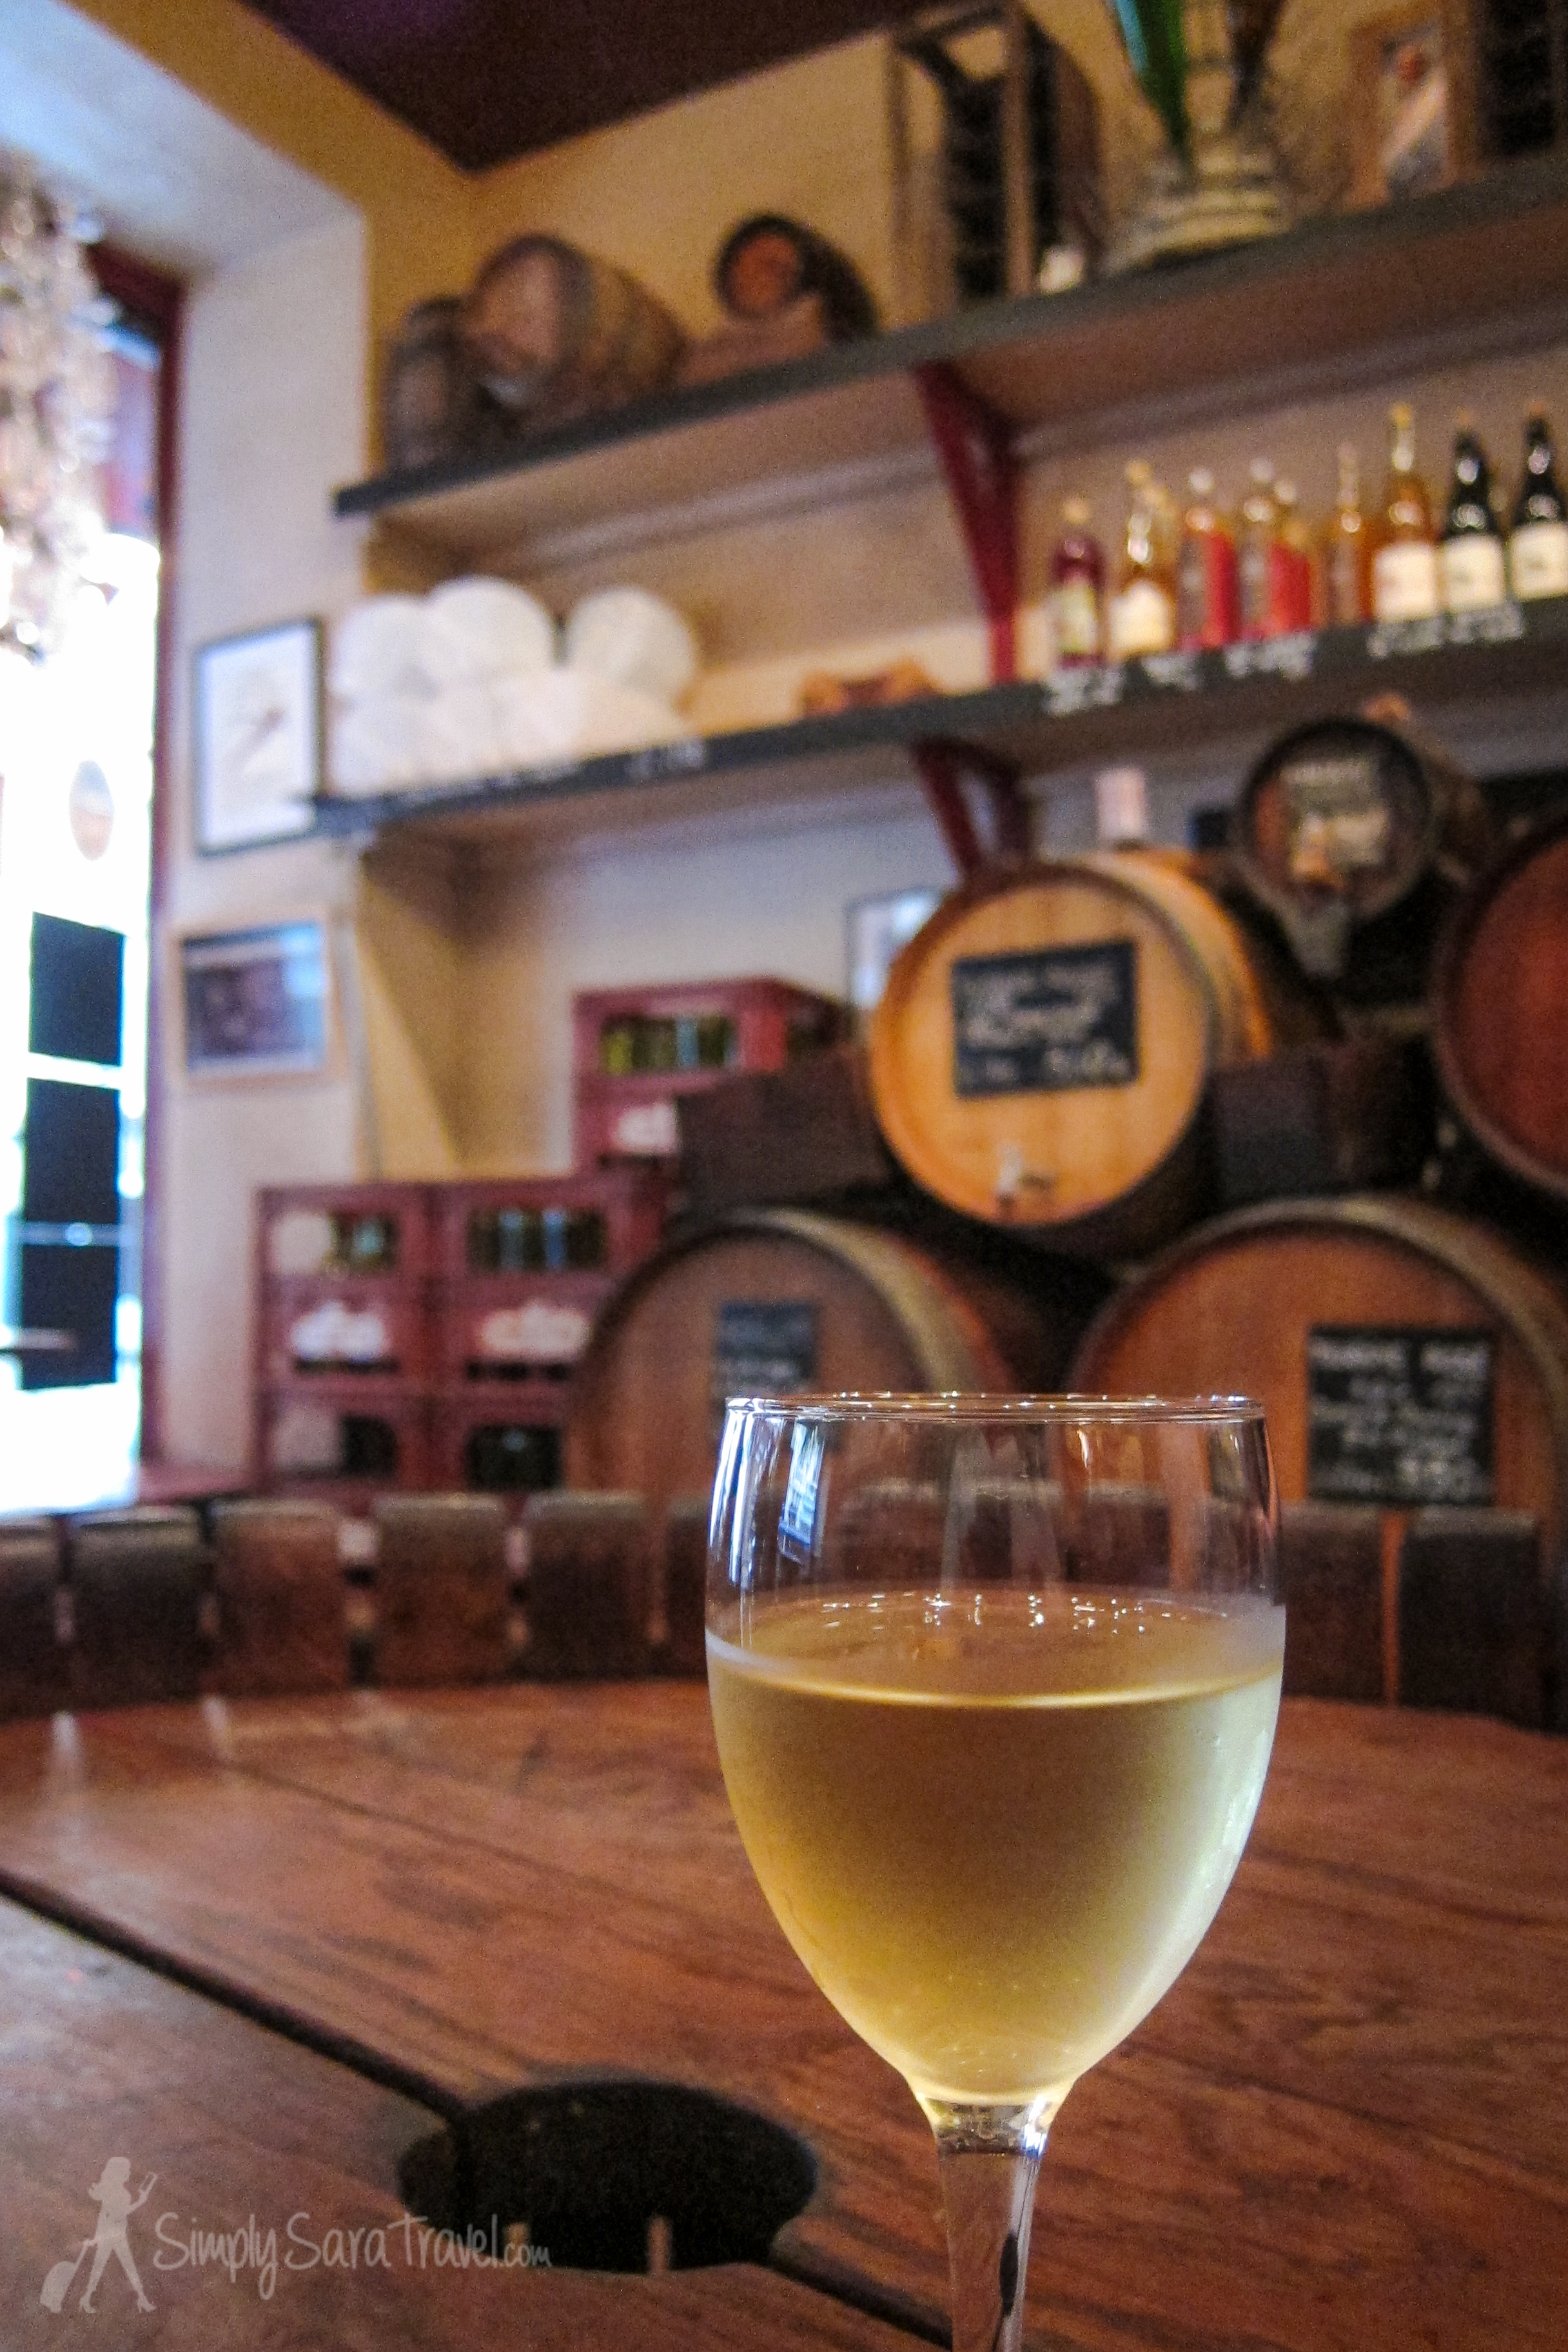 See those barrels of wine in the background? Locals stop by to purchase wine by the liter straight from the barrel!